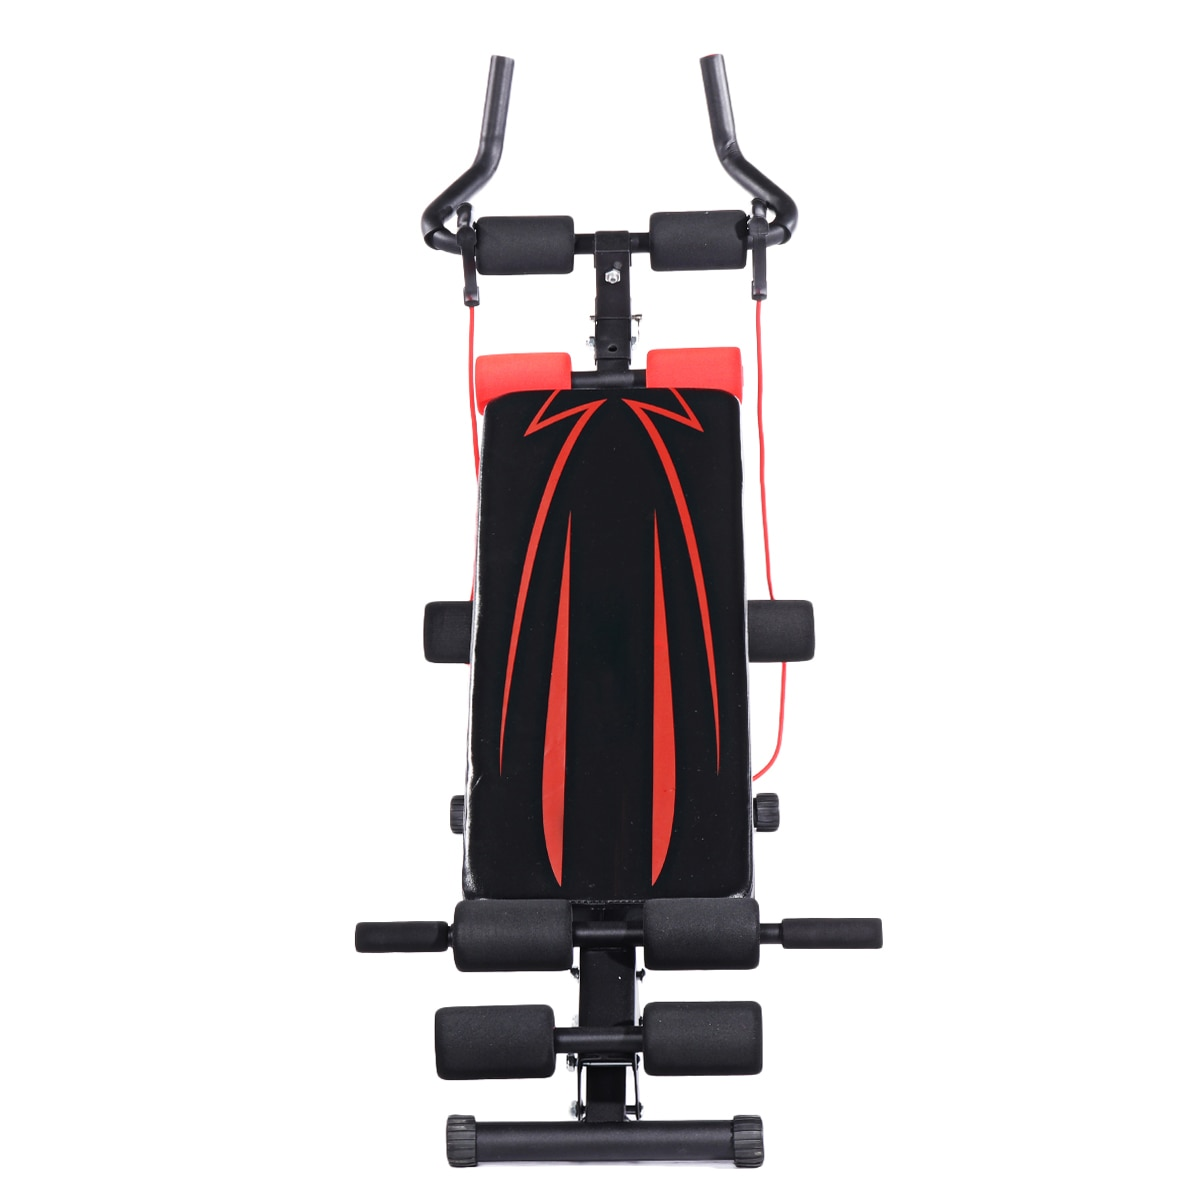 GRT Fitness 23781-zgadiw 4in1 Foldable Dumbbell Bench 7 Gear Backrest Sit Up AB Abdominal Multifunctional Fitness Bench Weight Training Equipment Rollers